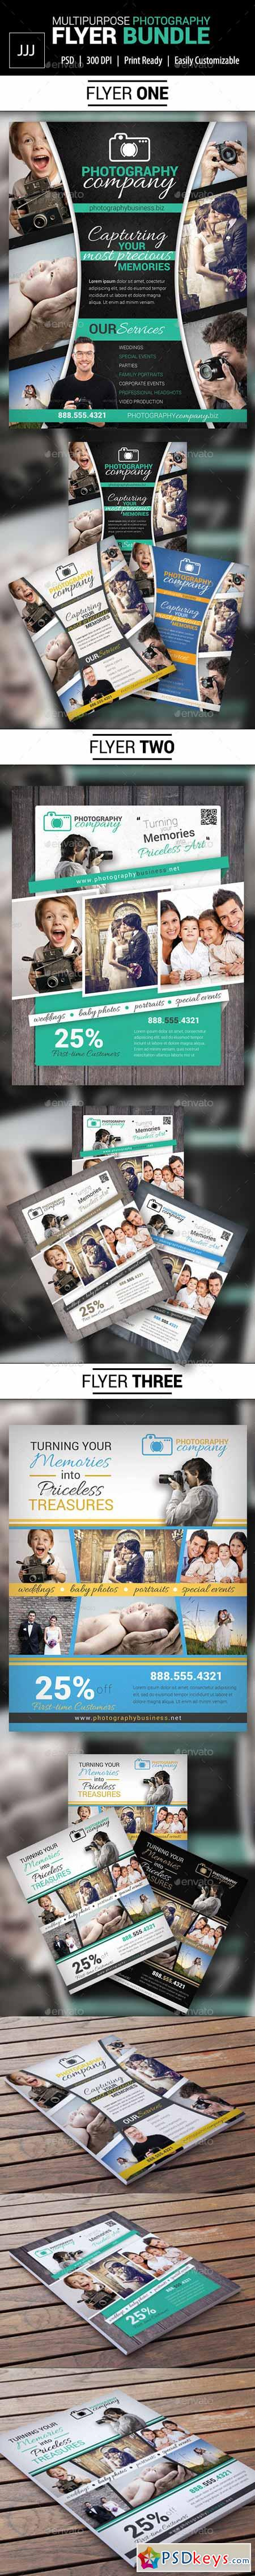 Photography Business Flyer Bundle 10844183